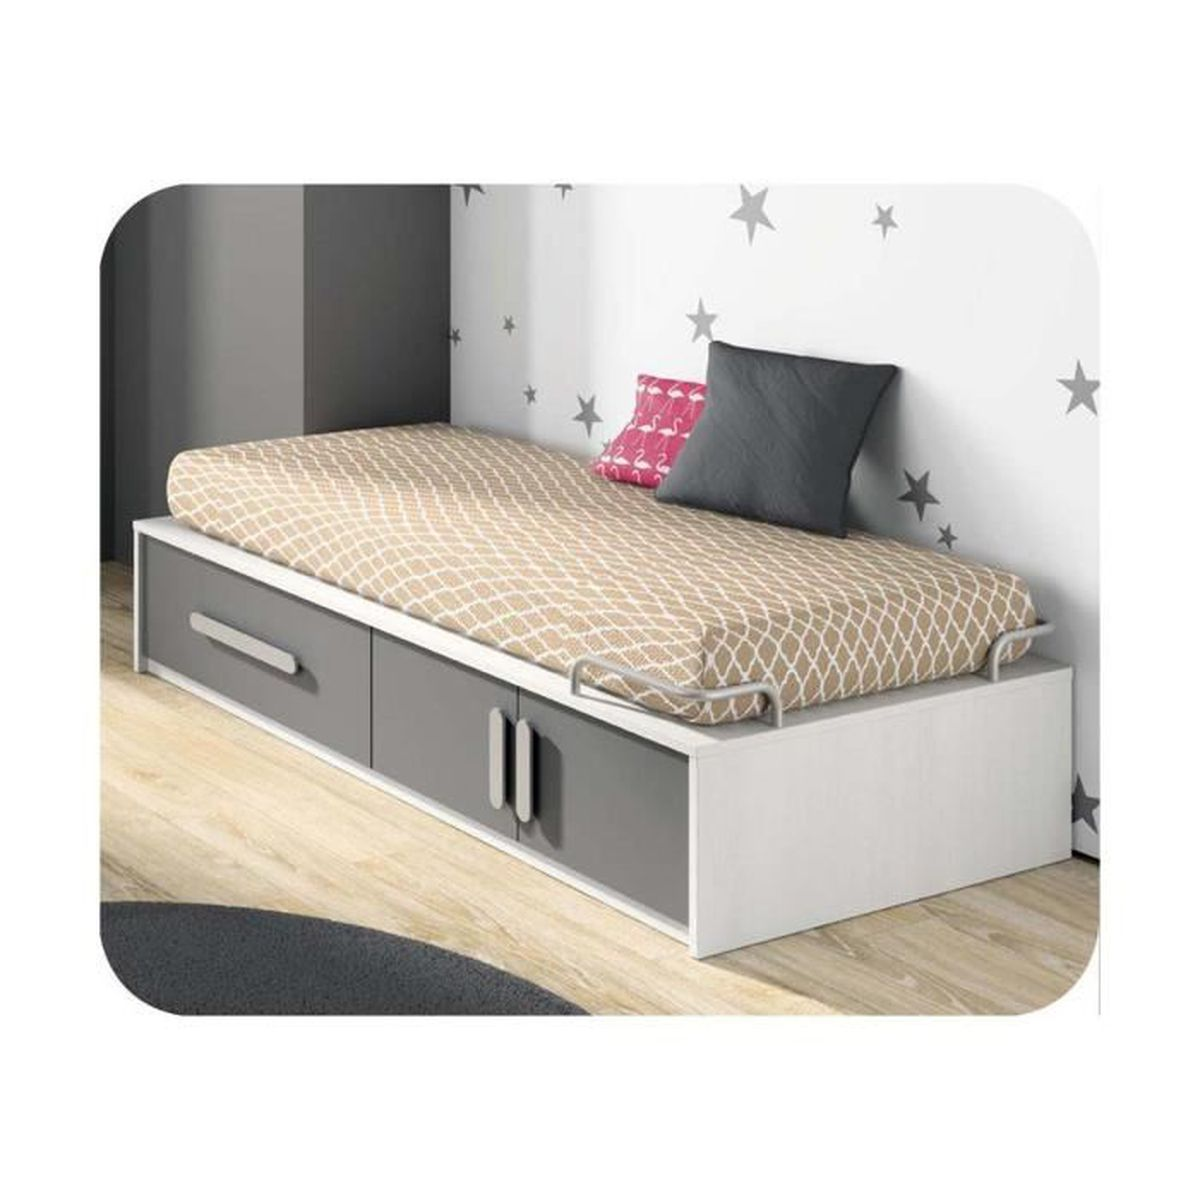 lit enfant planet 90x190 cm achat vente lit complet lit enfant planet 90x190 cm cdiscount. Black Bedroom Furniture Sets. Home Design Ideas